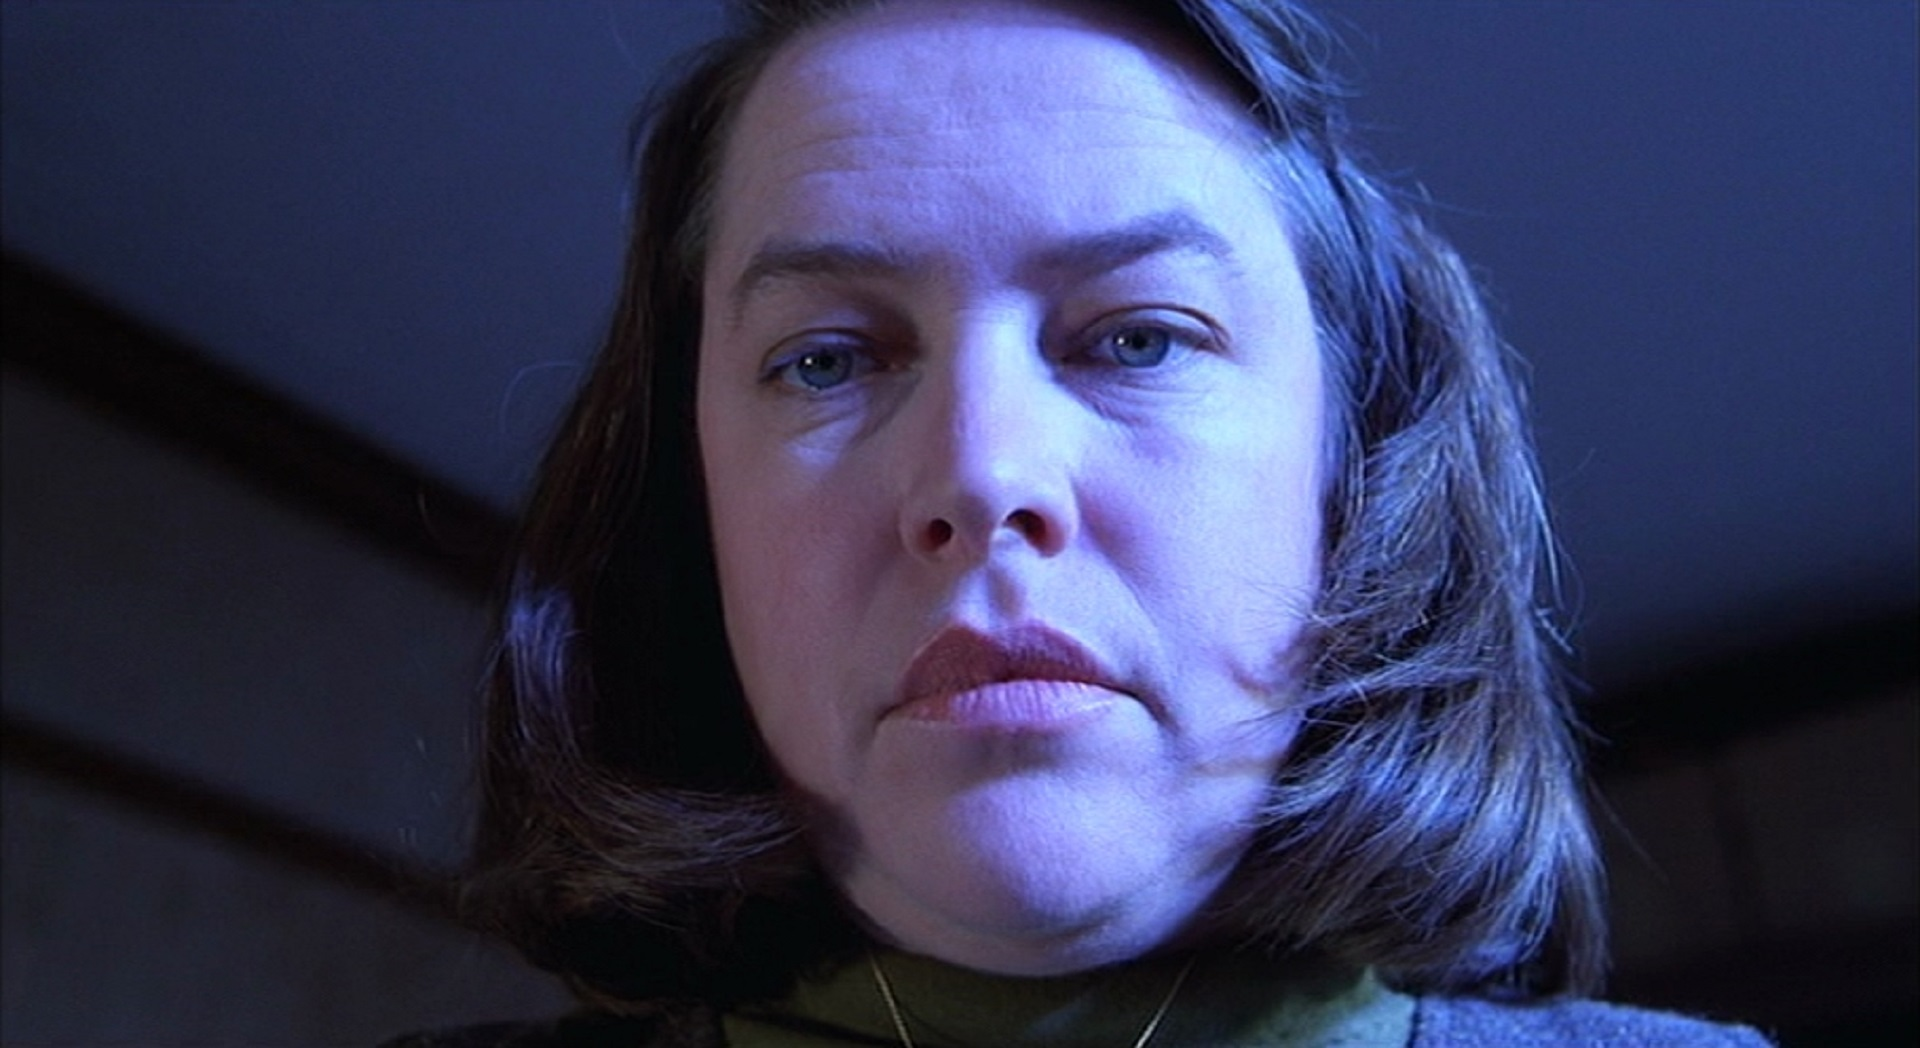 Kathy Bates in Misery; Copyright: Columbia Pictures / MGM Home Entertainment